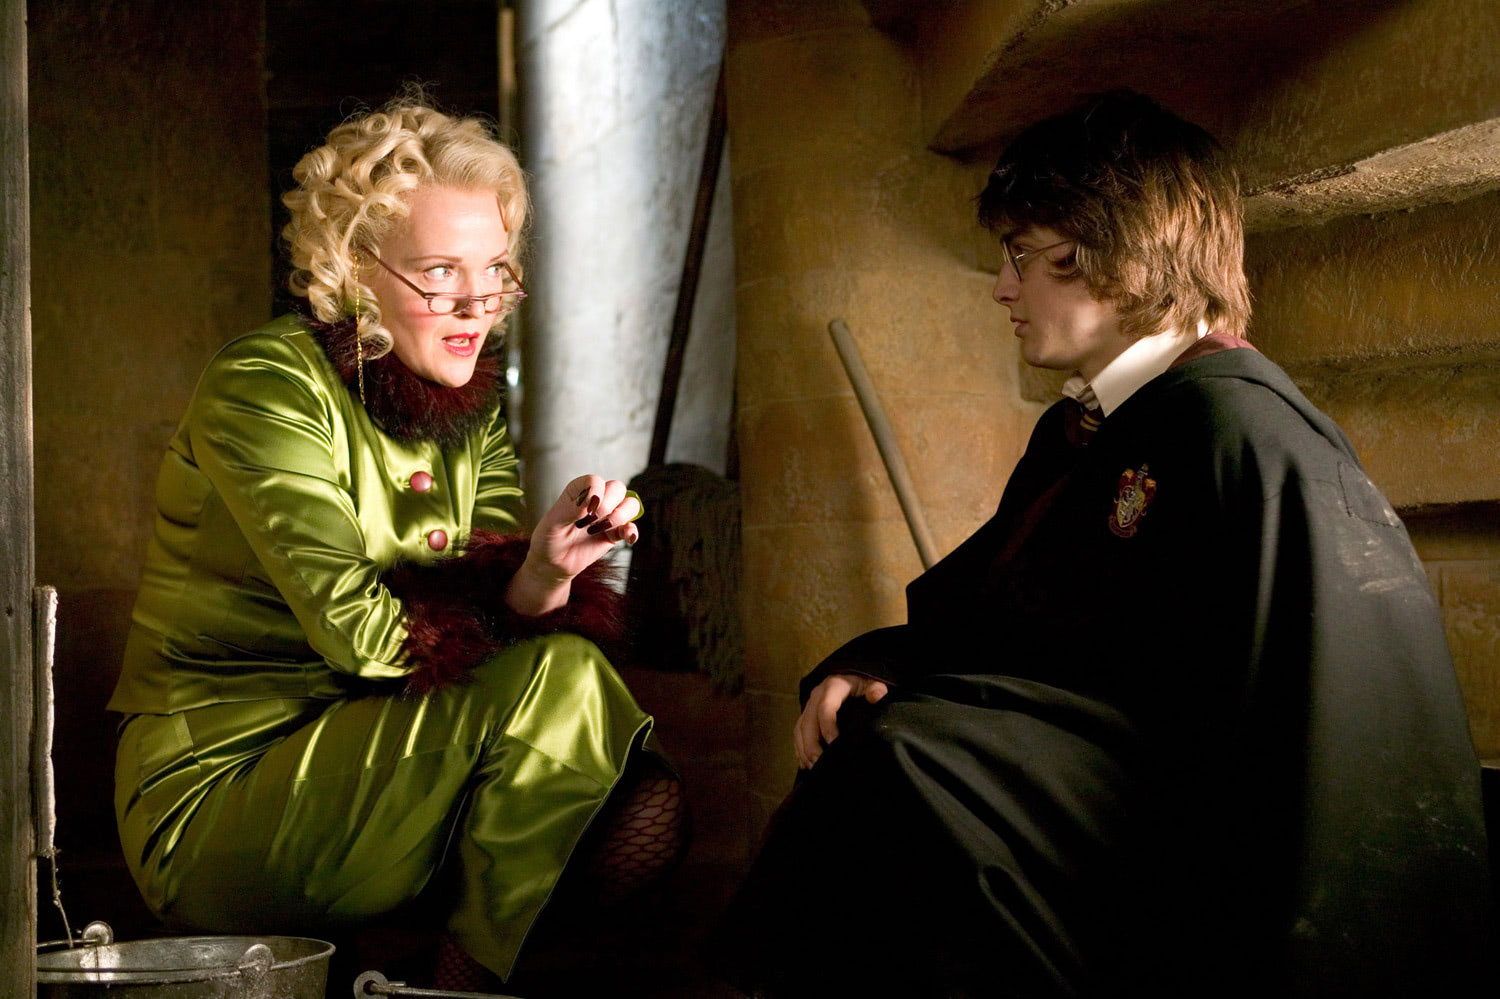 Rita Skeeter interviews Harry